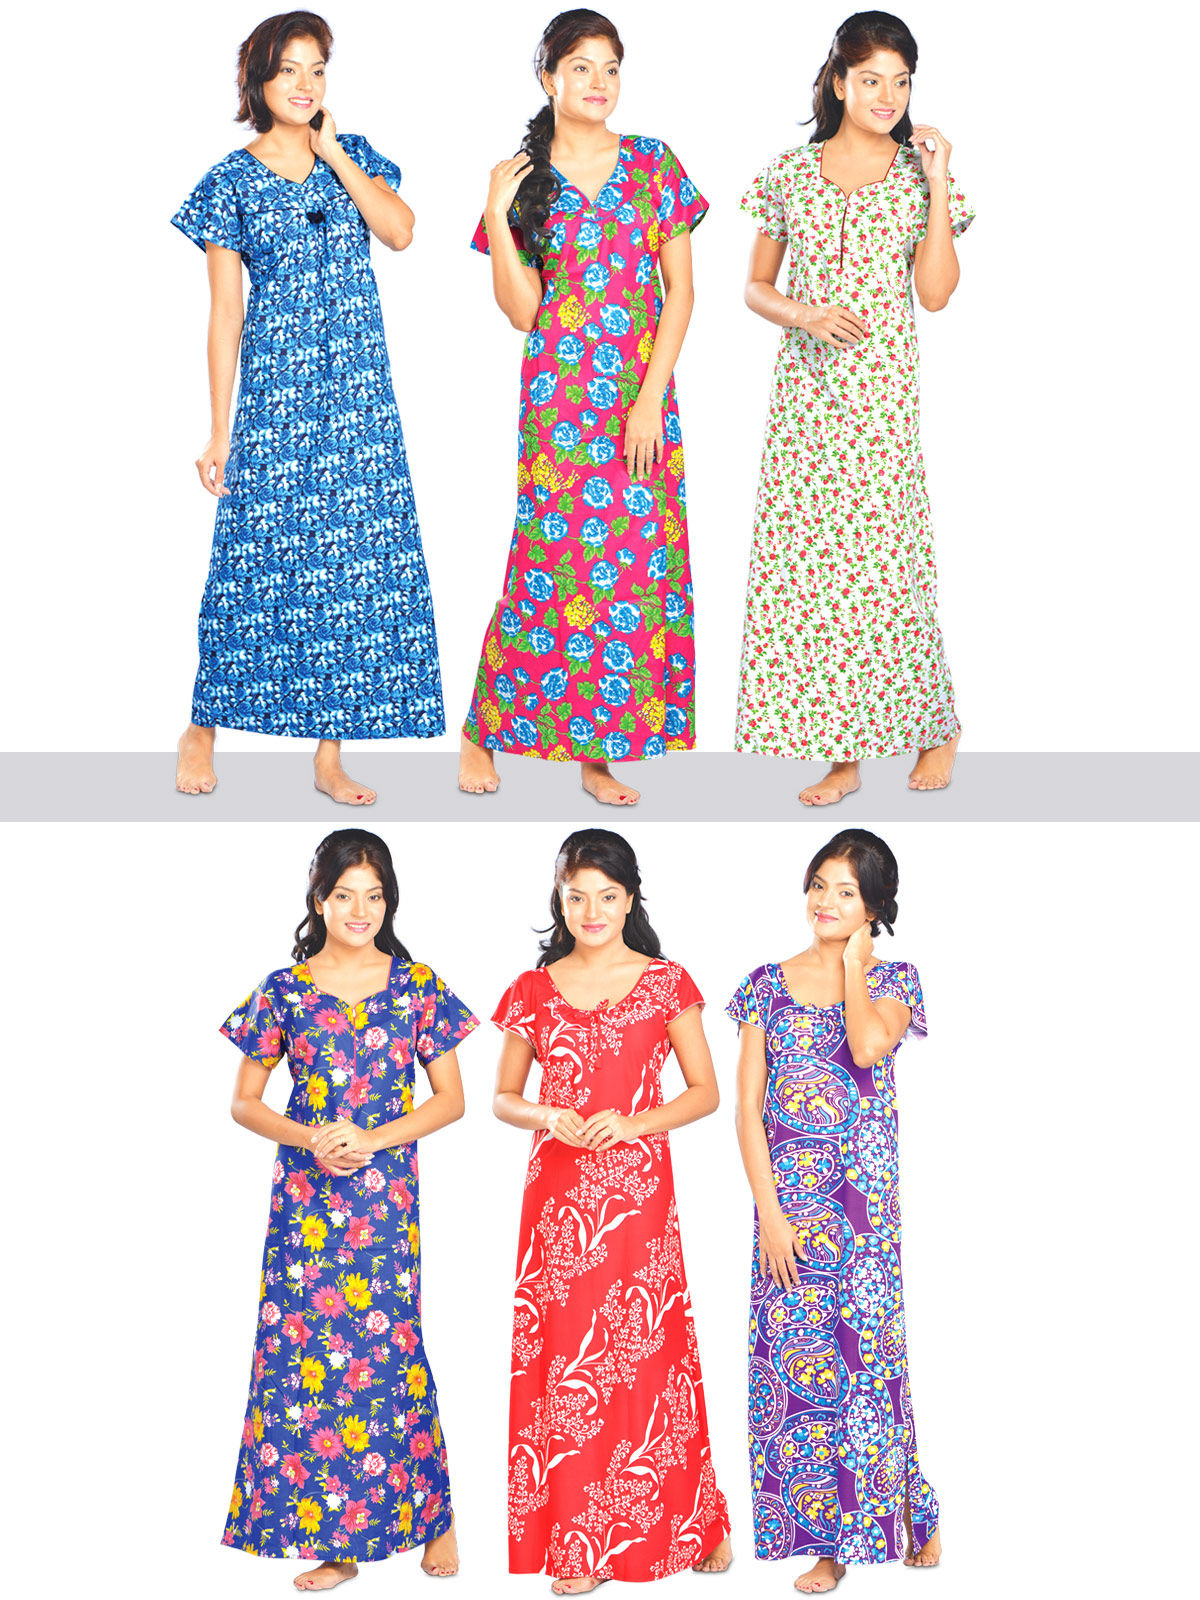 0081663838 Buy Set of 6 Cotton Nighties Online at Best Price in India on Naaptol.com